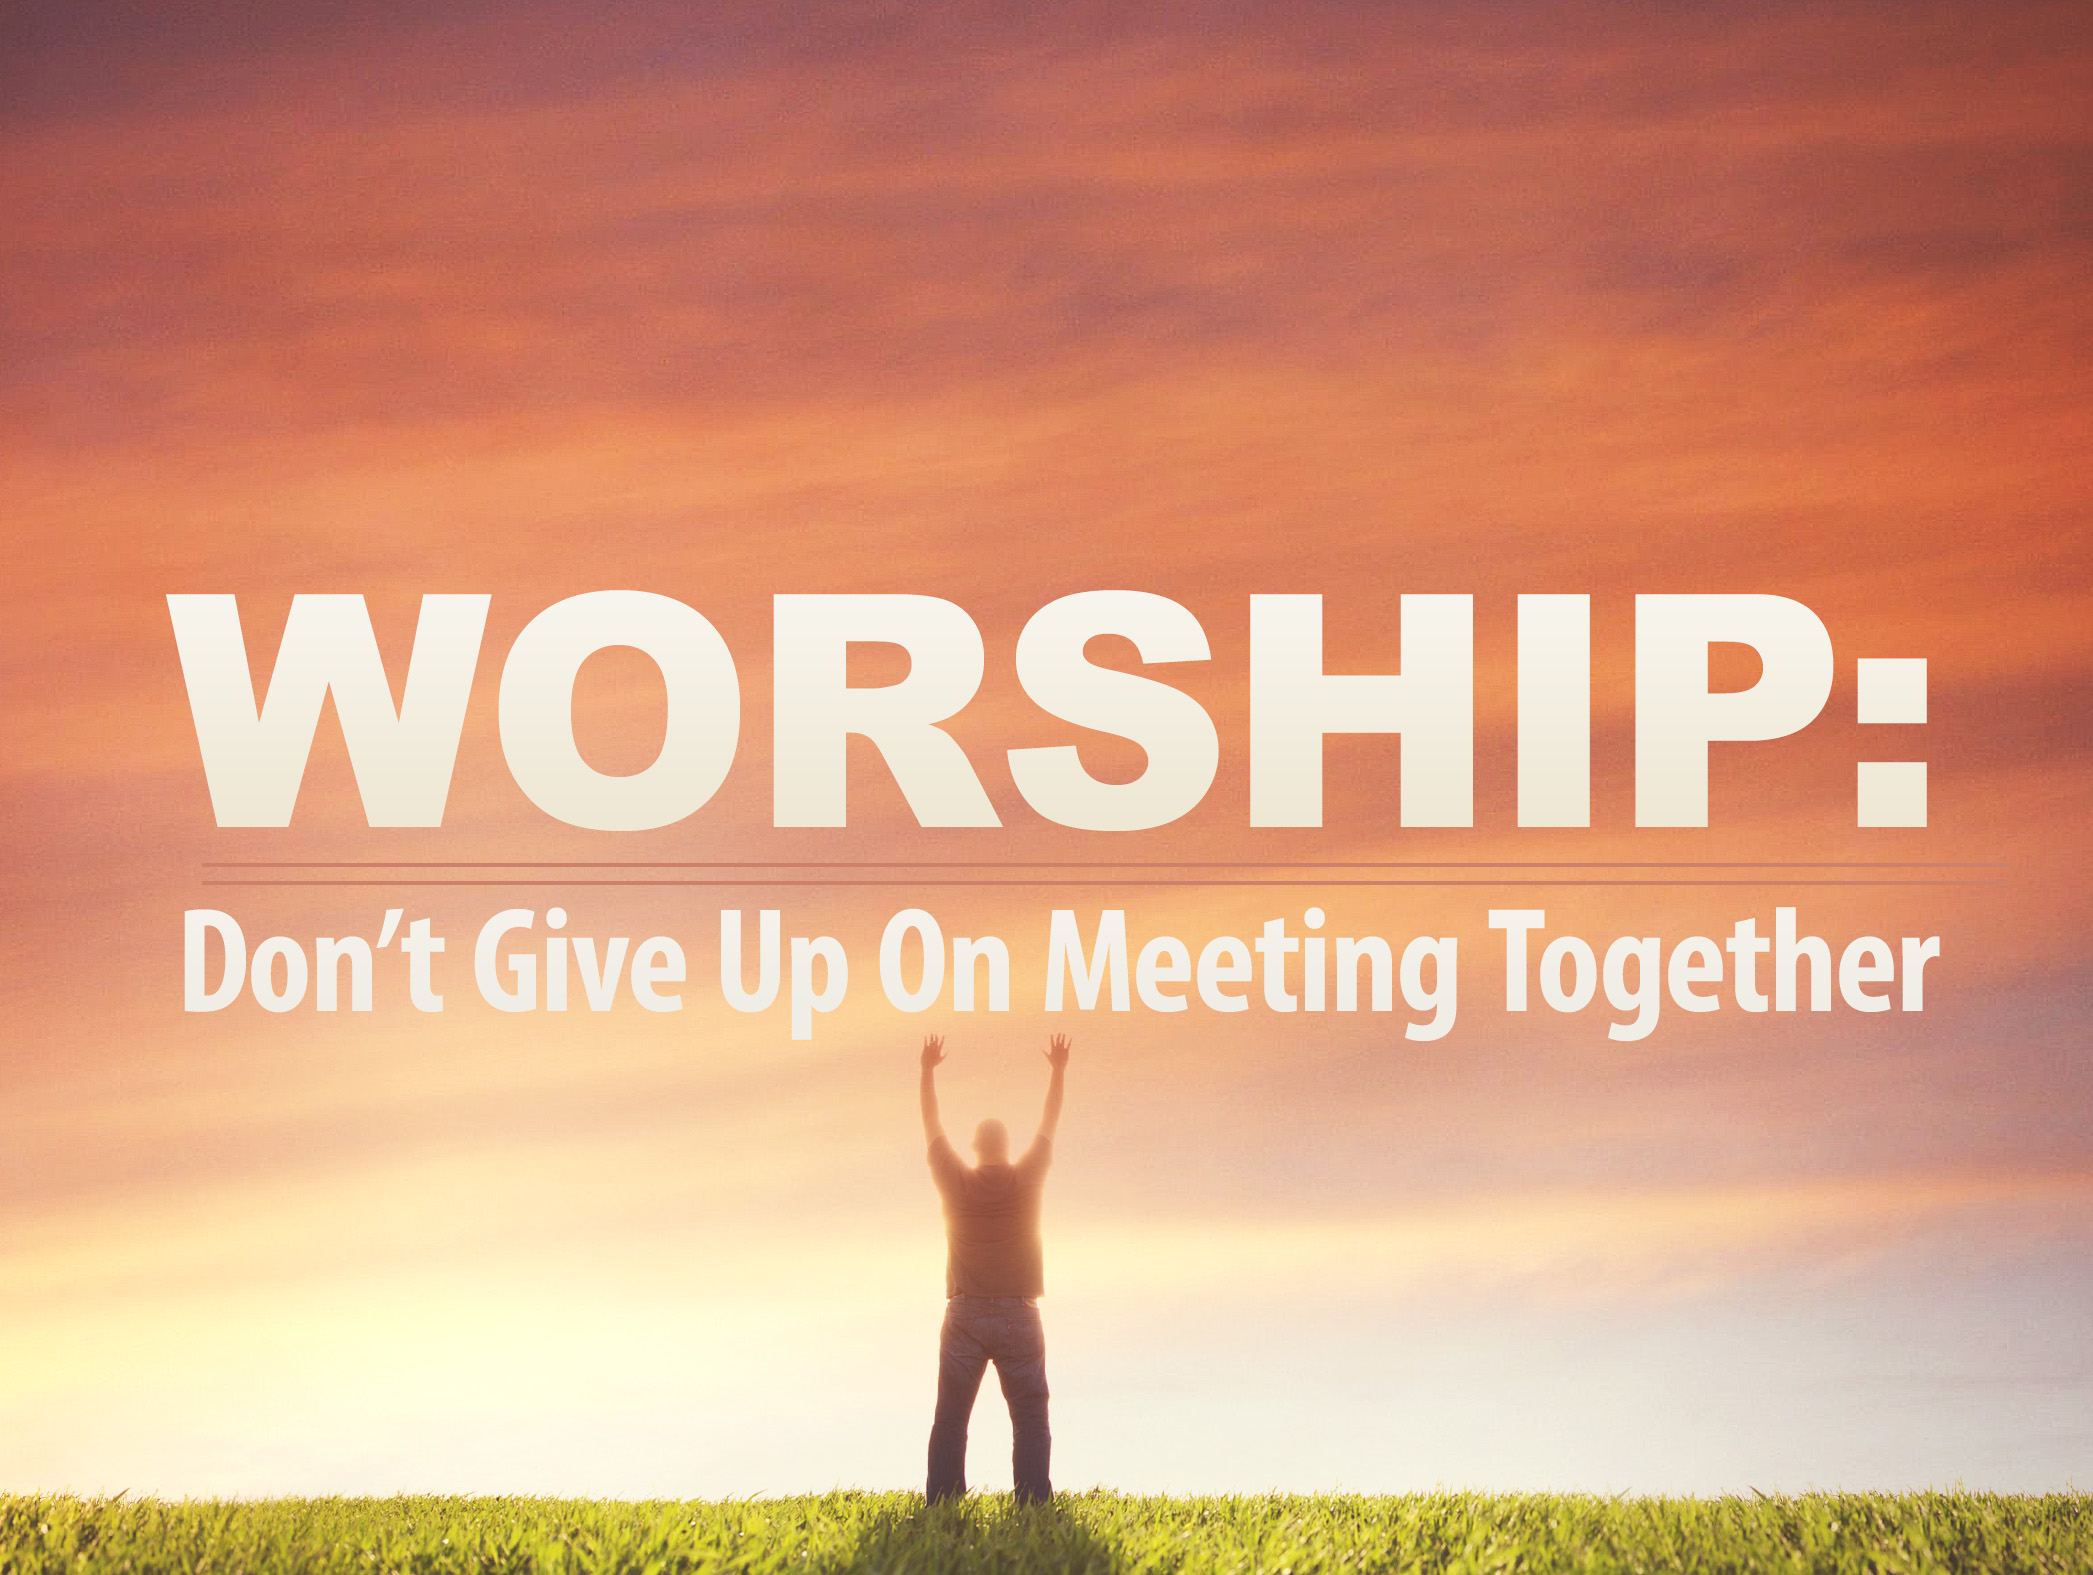 Worship: Don't Give Up On Meeting Together